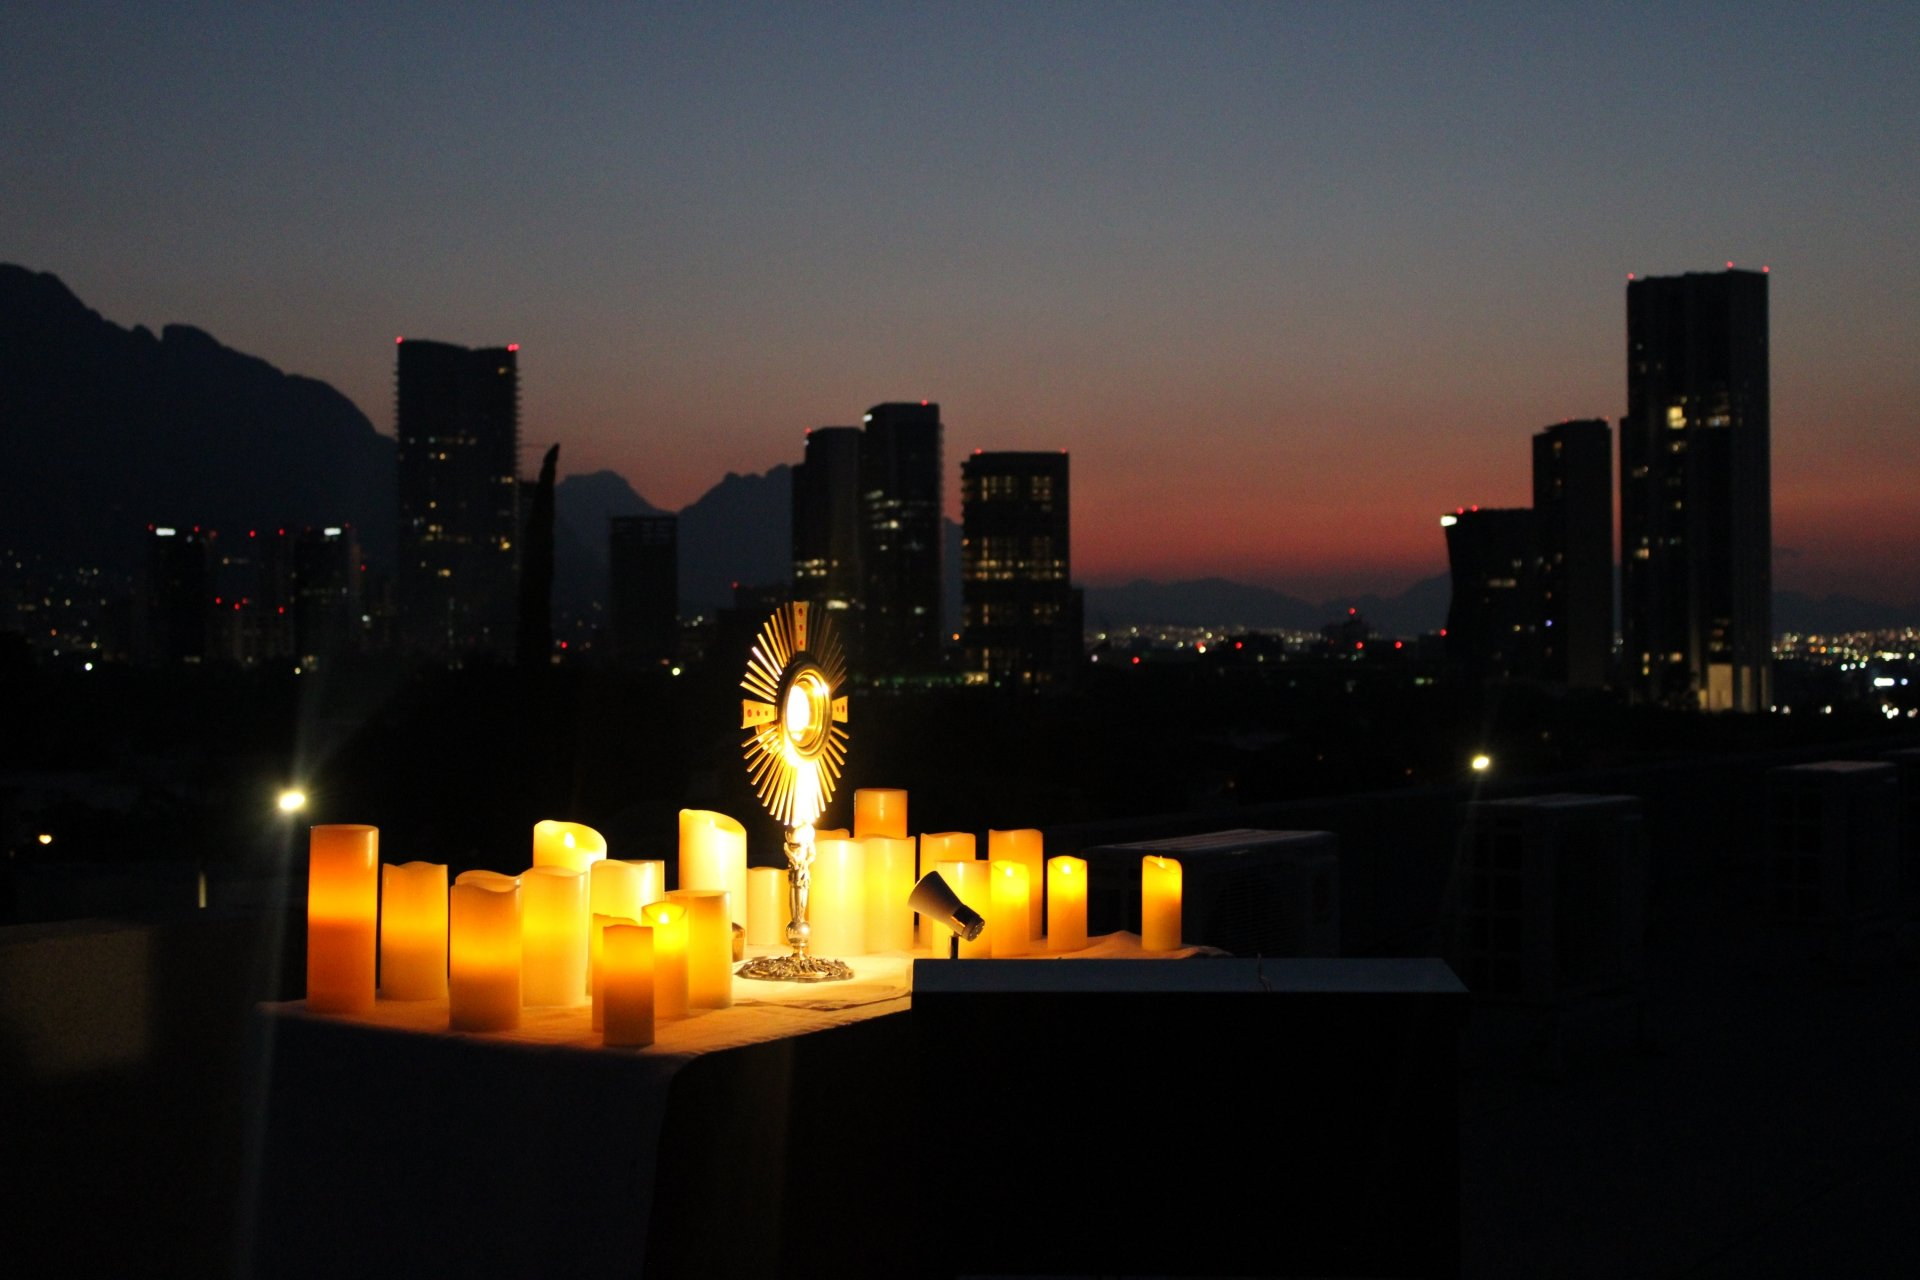 eucharist, sky, clouds, candles, city, sunset, hope, god, worship, christ, darkness